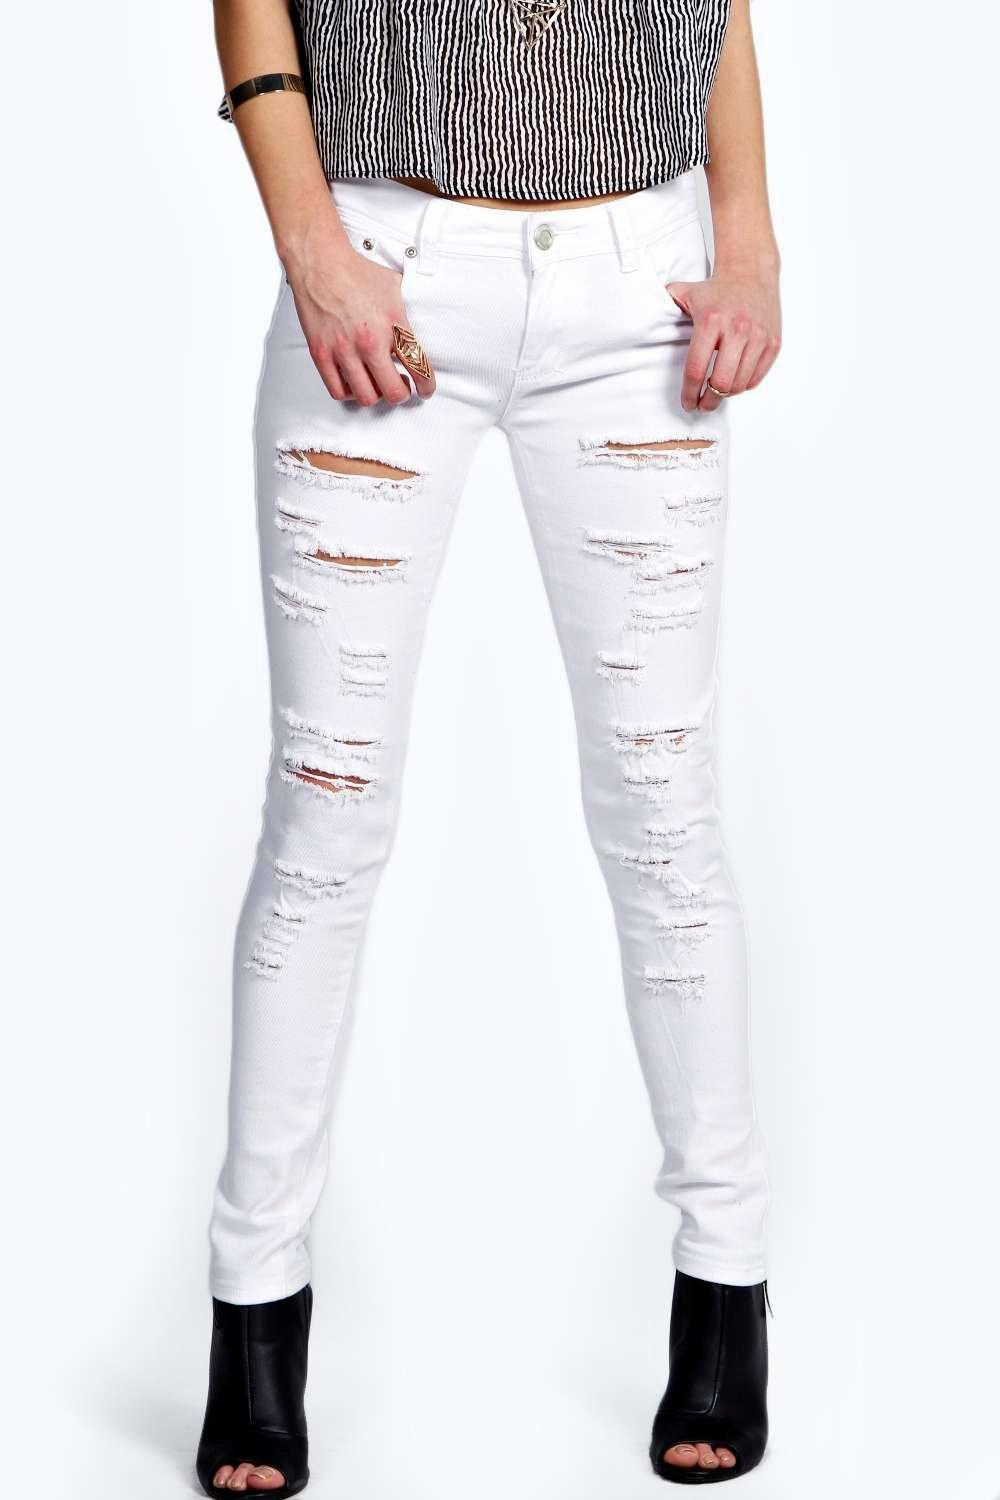 Evie Low Rise Extreme Shredded Skinny Jeans